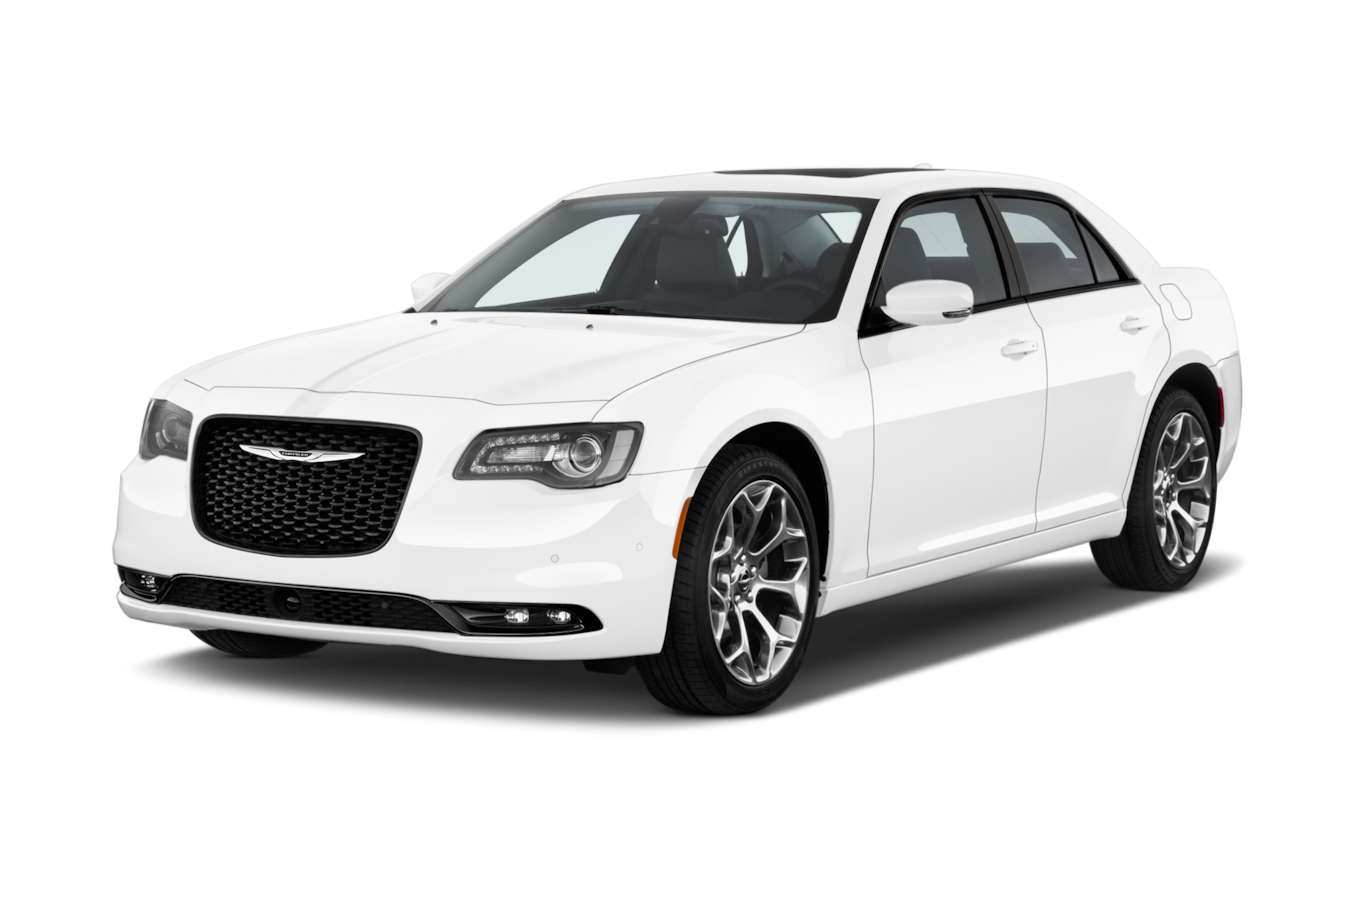 55 All New 2019 Chrysler Lineup Speed Test by 2019 Chrysler Lineup